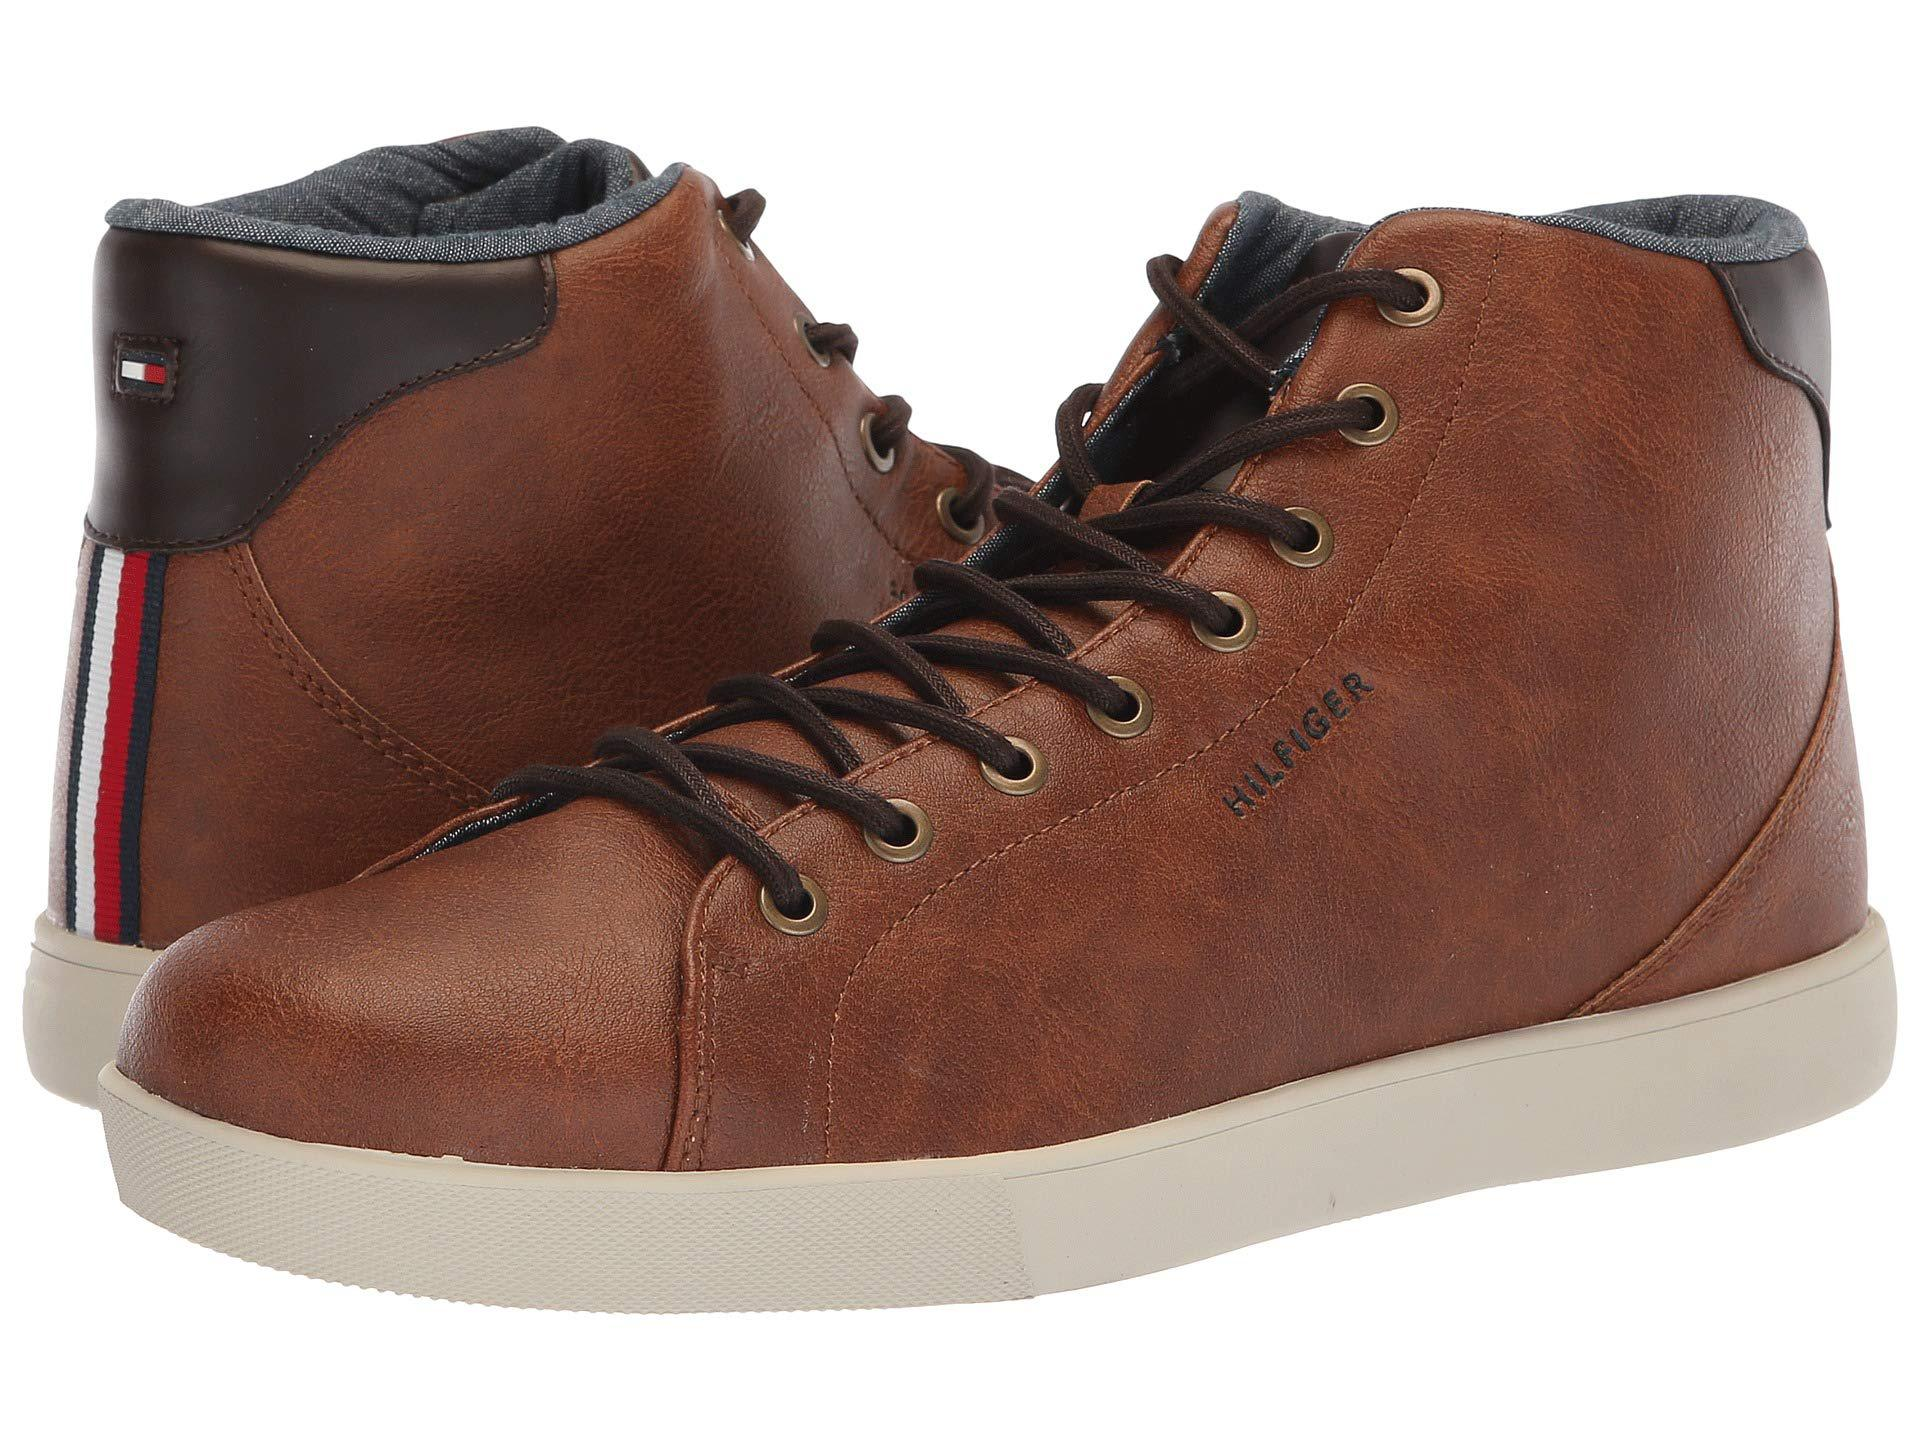 9ea283b58786bc Lyst - Tommy Hilfiger Talis in Brown for Men - Save 45%